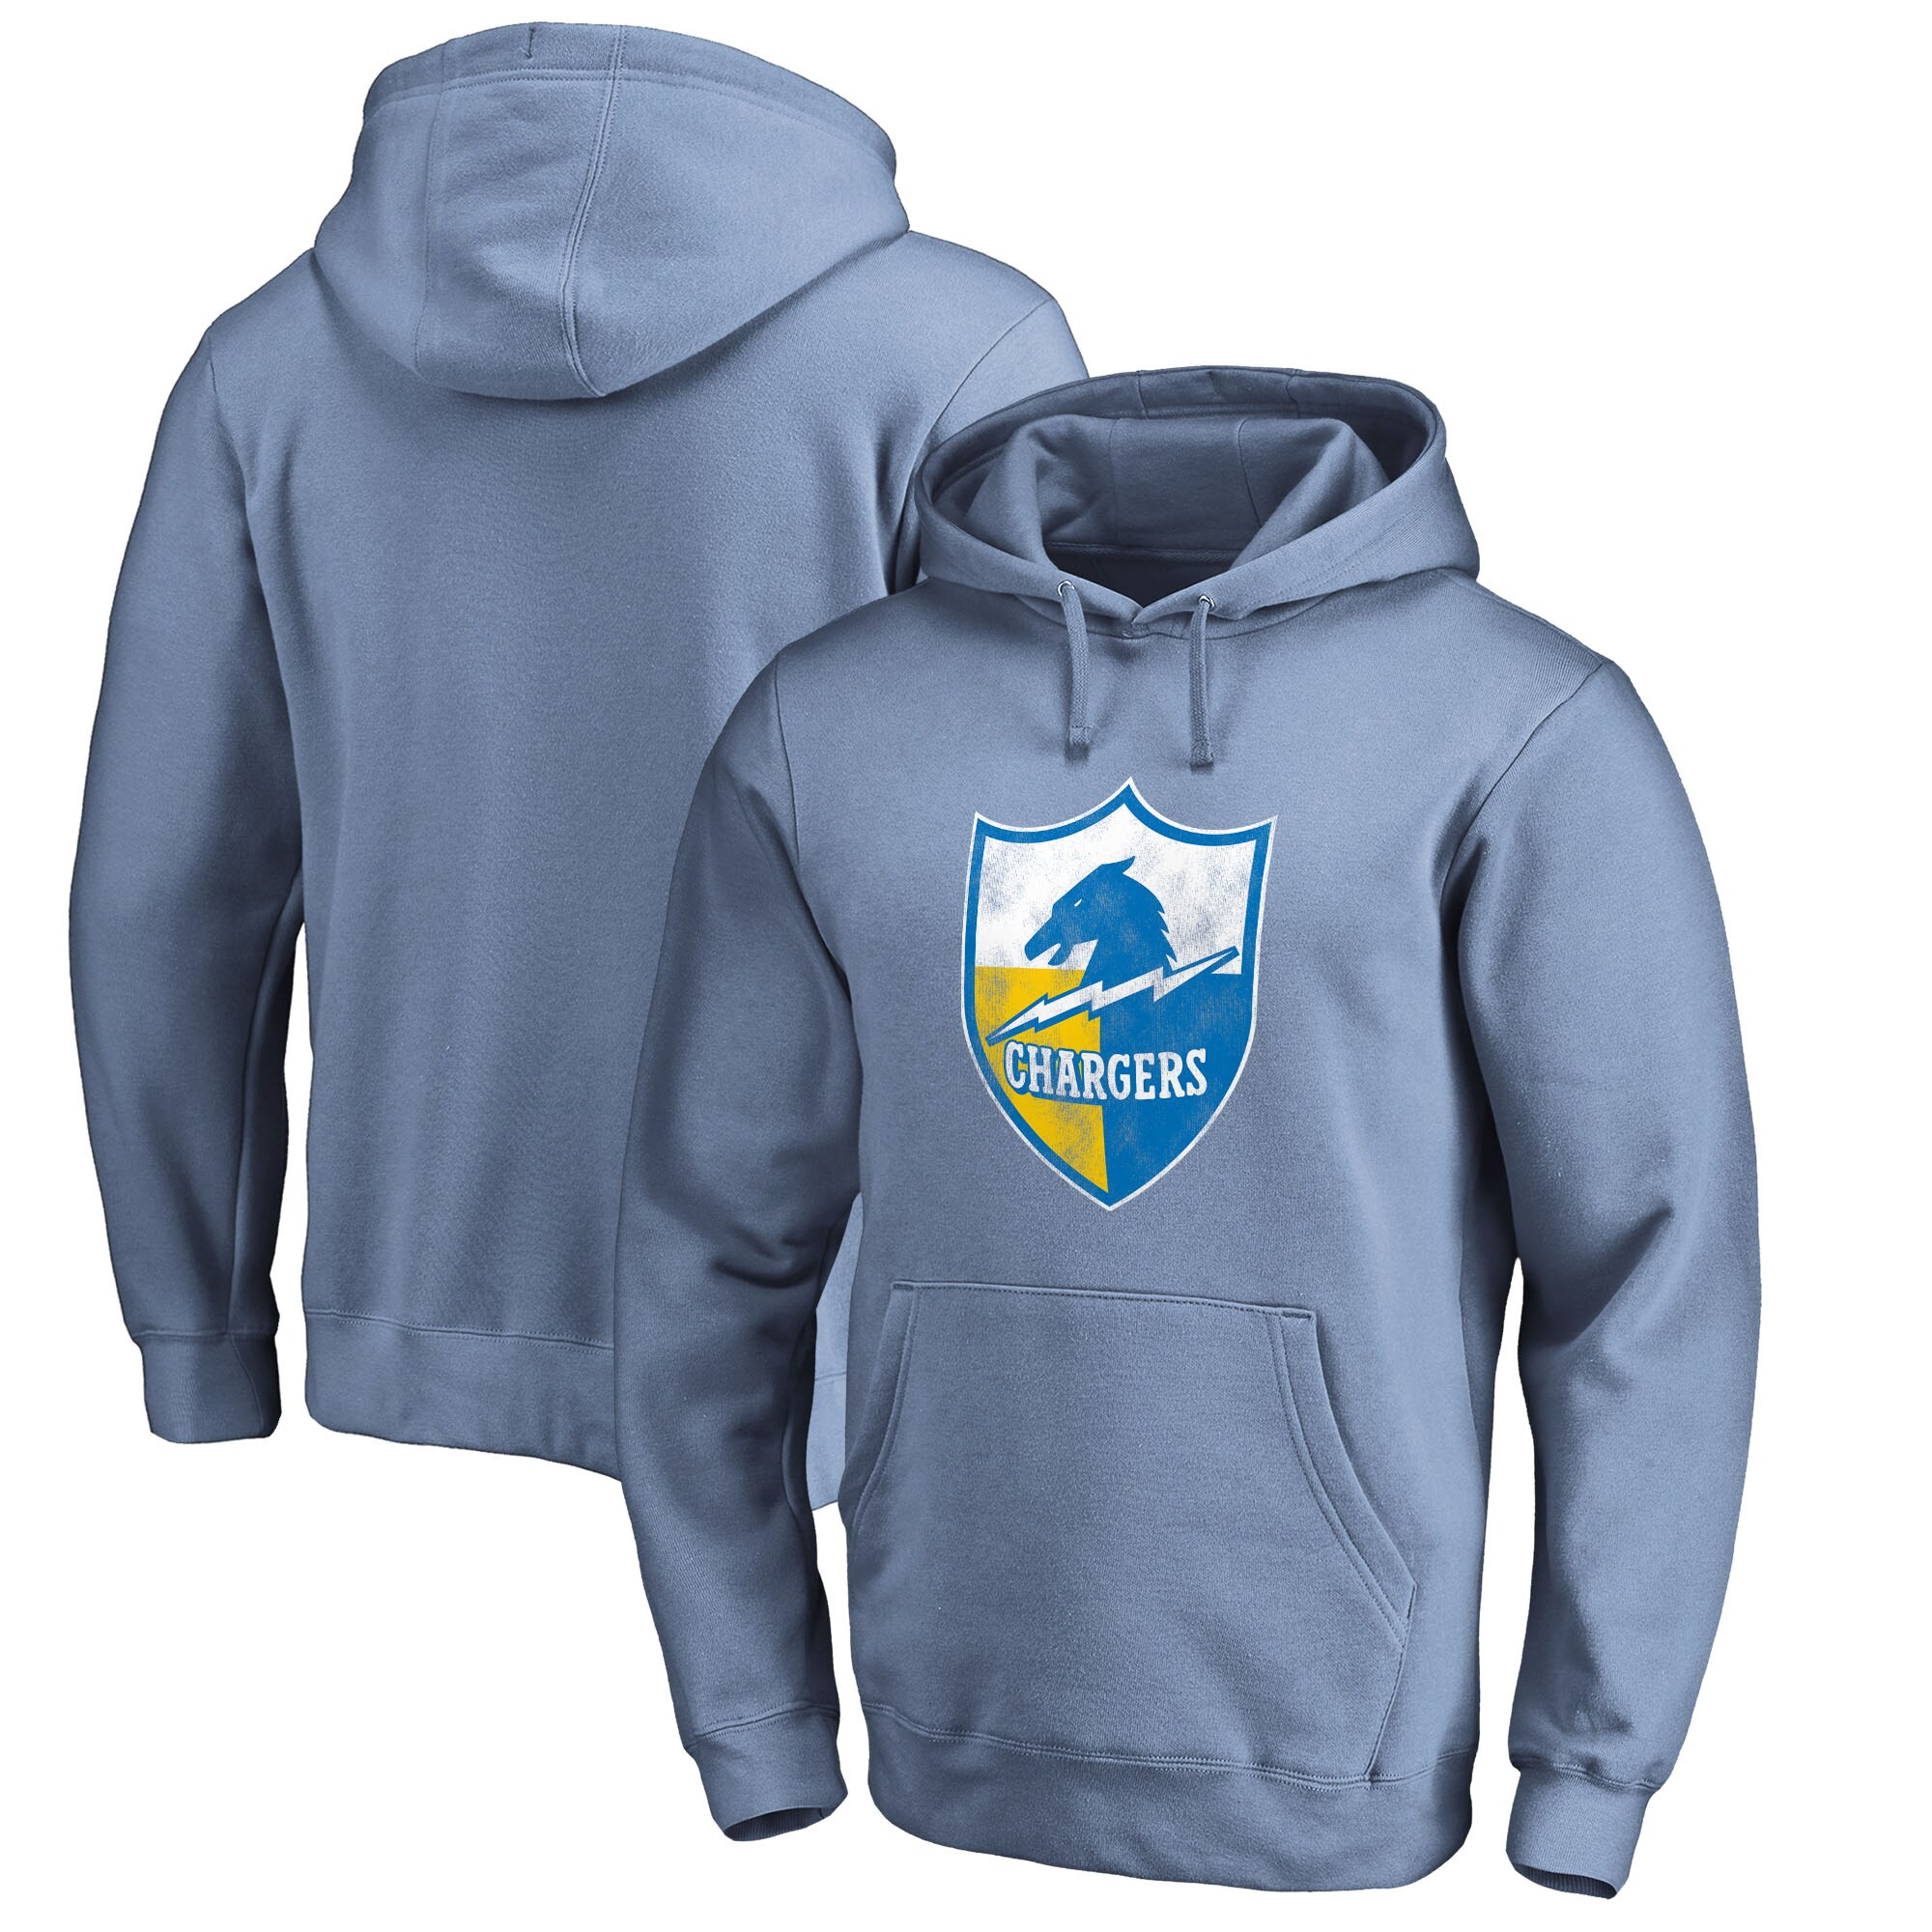 Los Angeles Chargers NFL Pro Line by Fanatics Branded Throwback Pullover Hoodie - Powder Blue